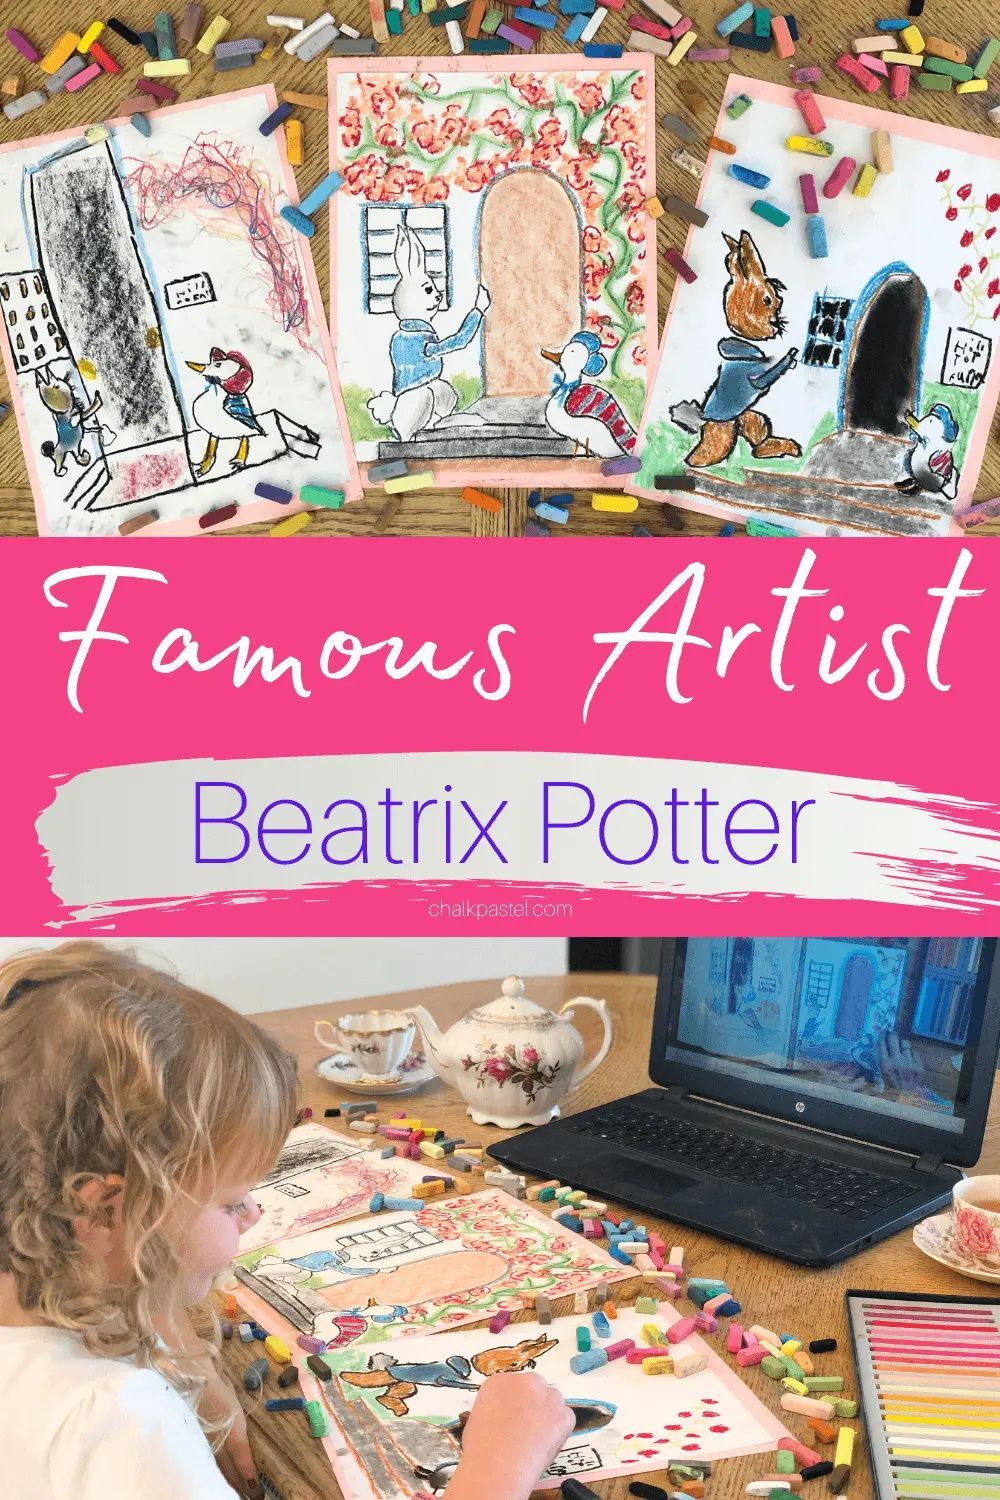 Famous artist beatrix potter you are an artist in 2021